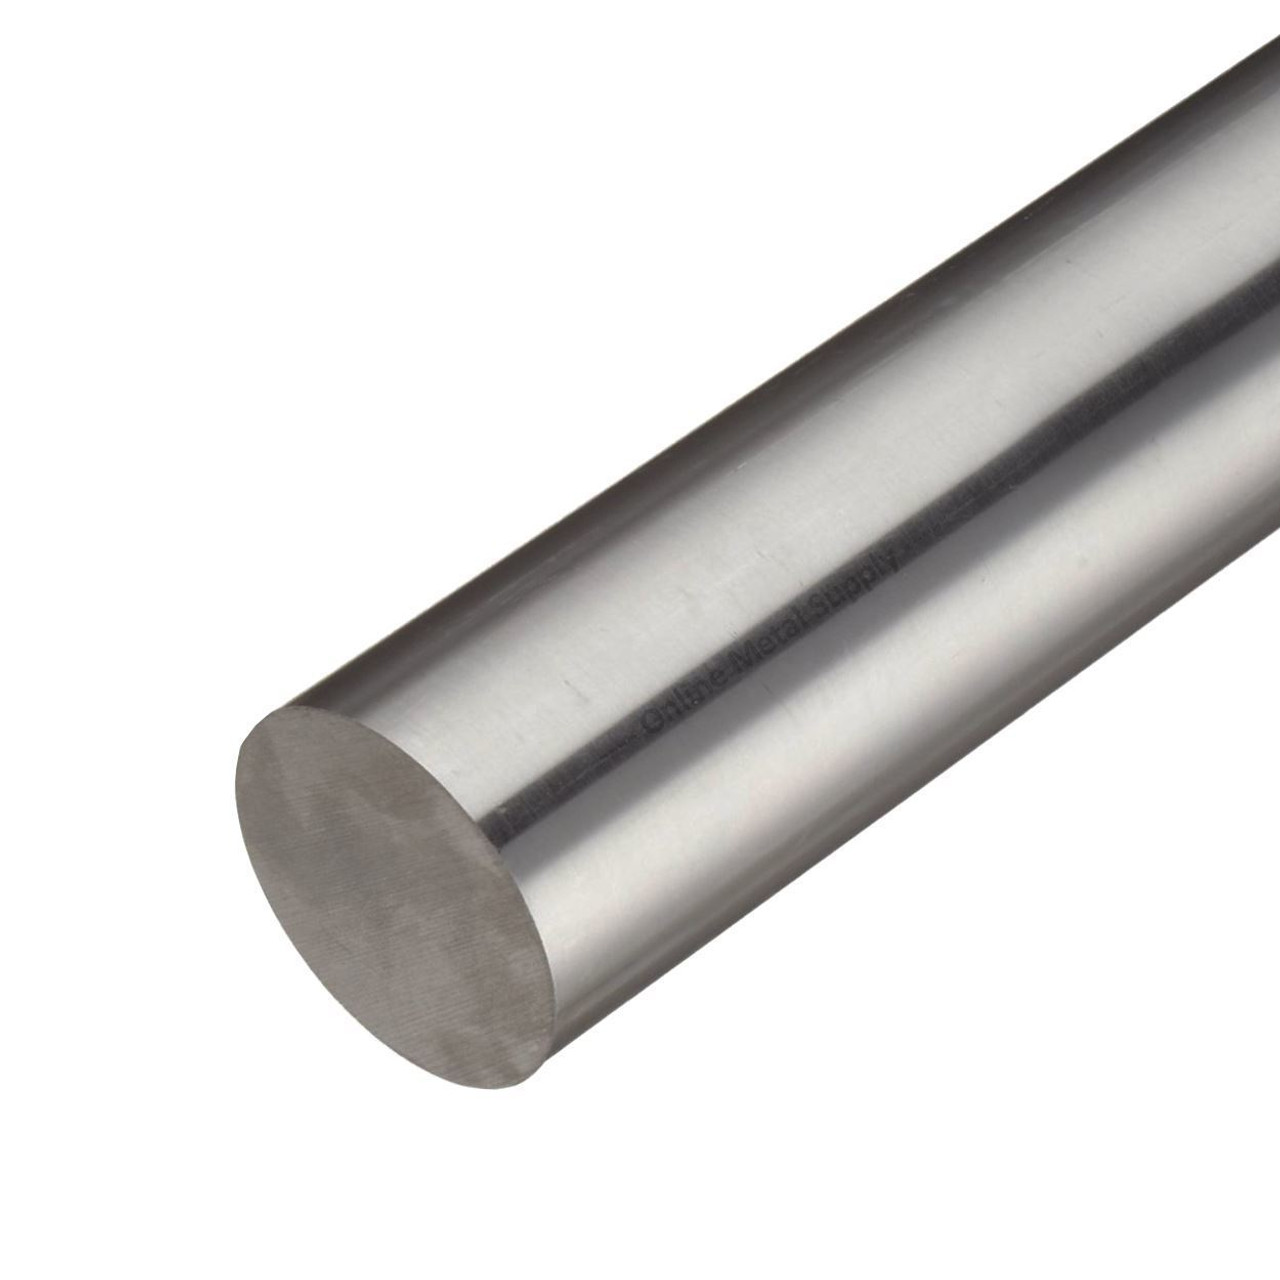 8.000 (8 inch) x 1 inch, 15-5 Cond A CF Stainless Steel Round Rod